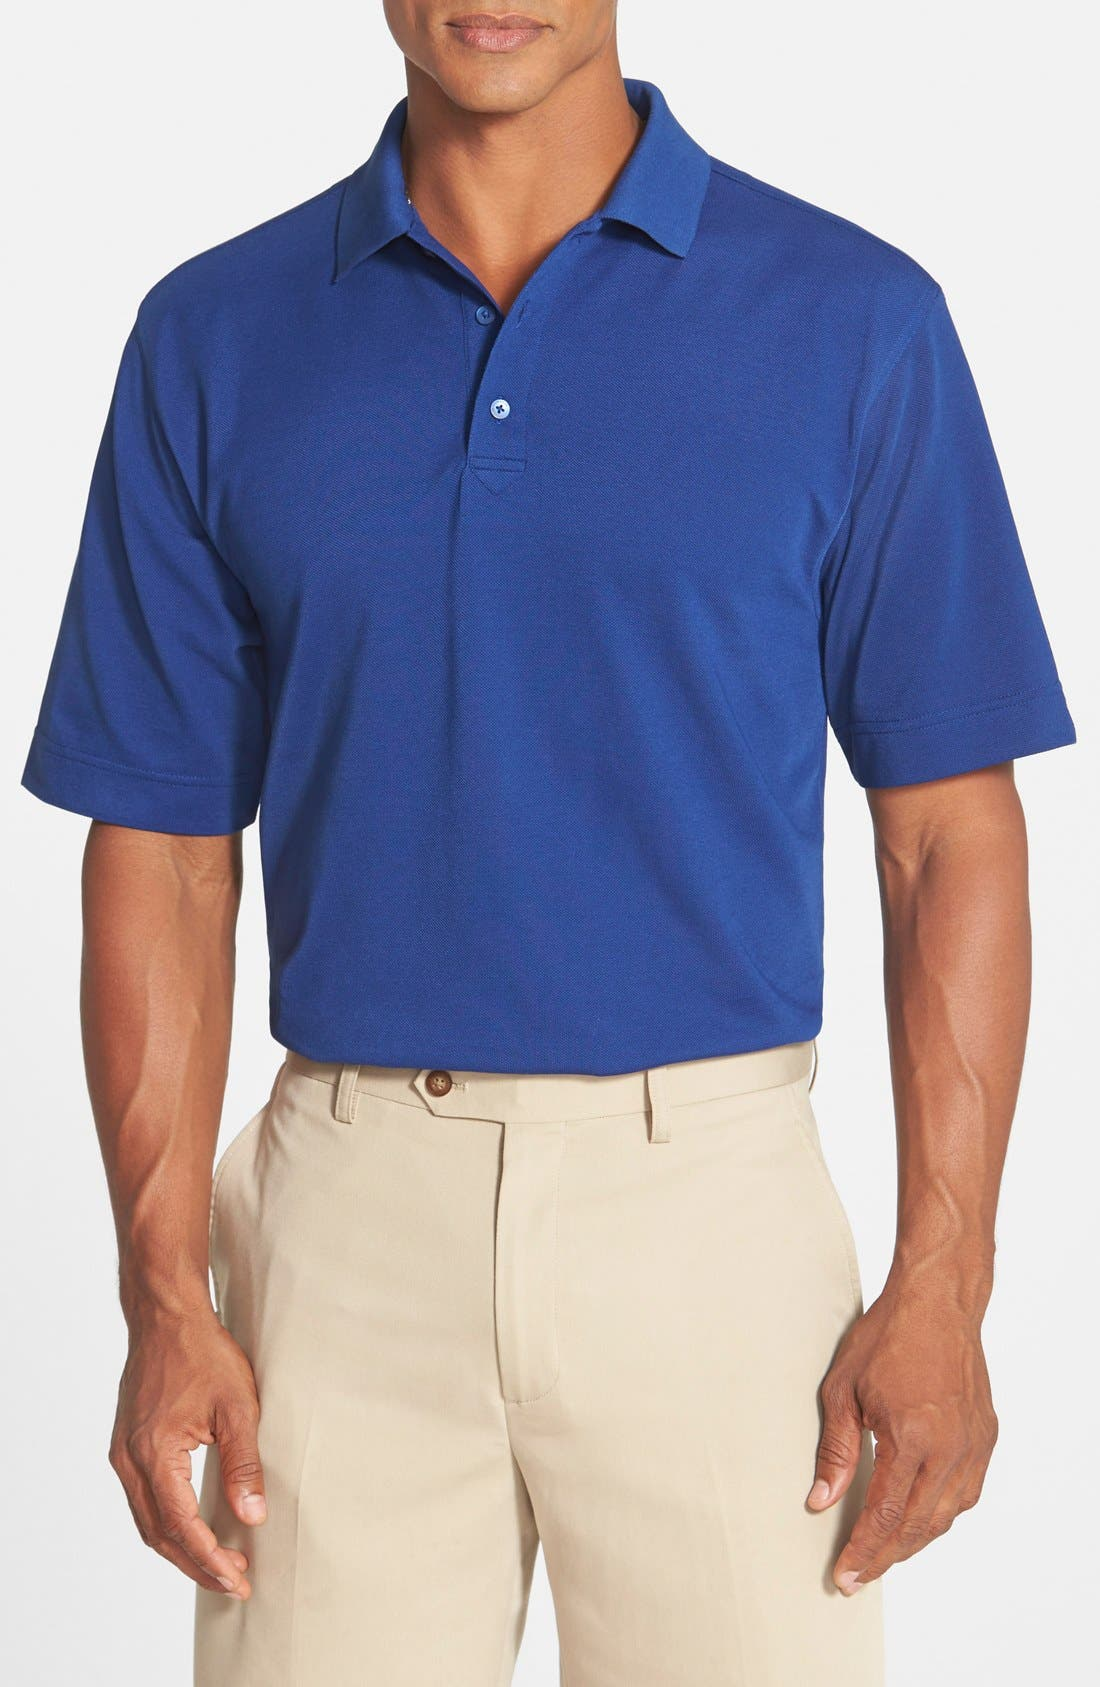 Main Image - Cutter & Buck 'Championship' Classic Fit DryTec Golf Polo (Online Only)